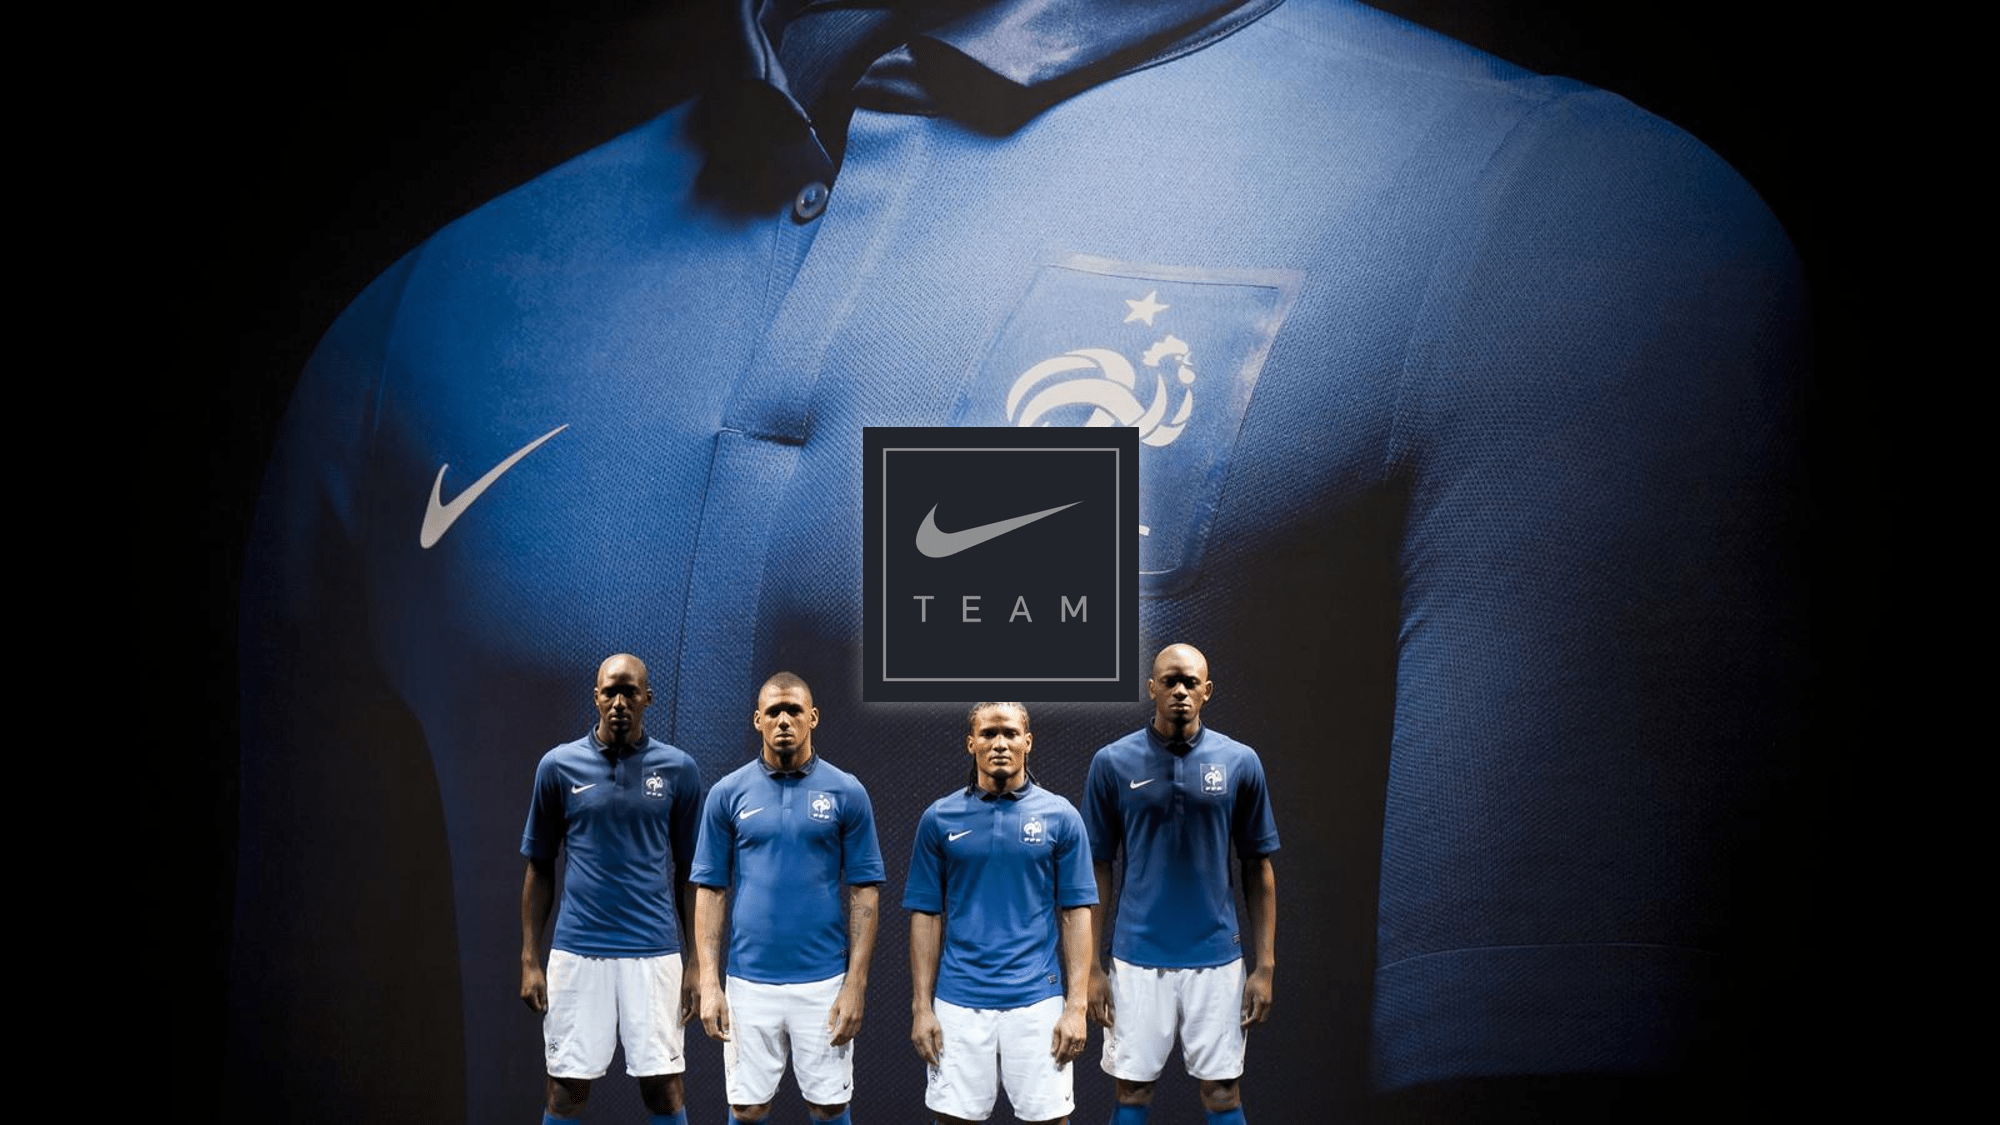 Brand activation as the driver for Nike TEAM sales e-commerce